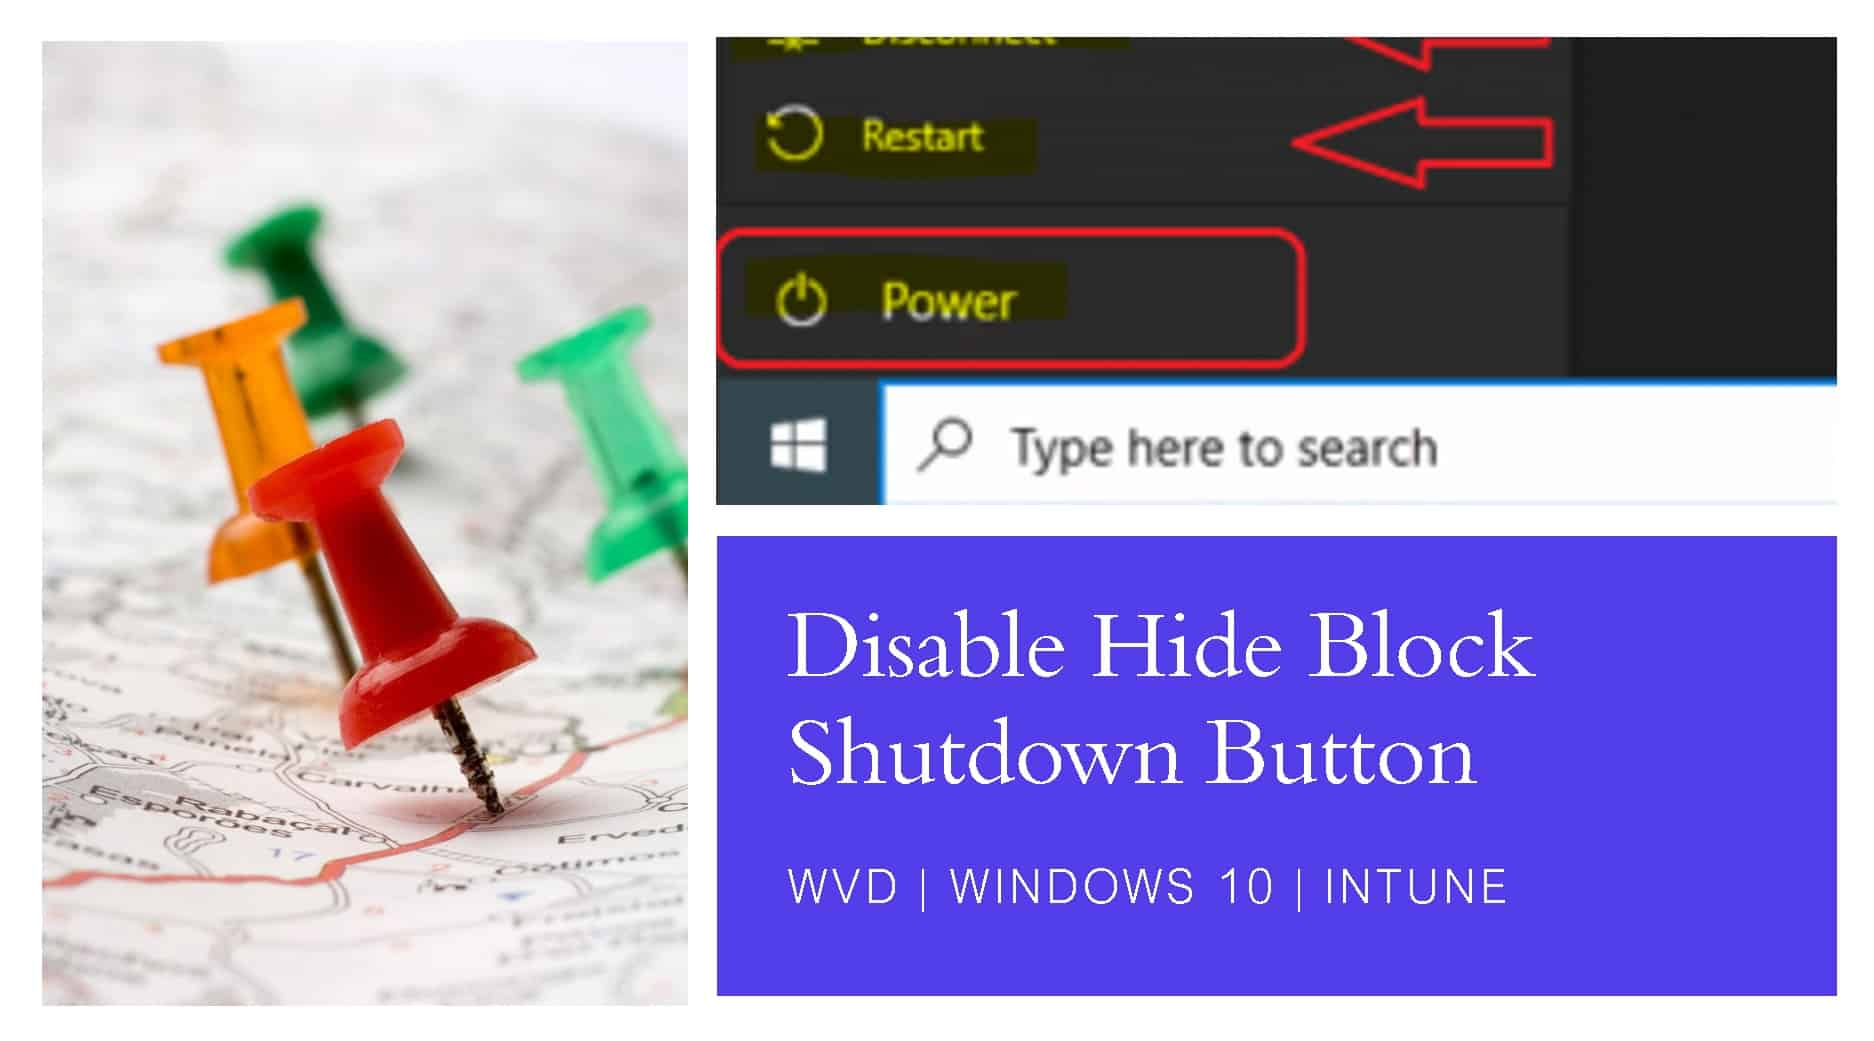 WVD Disable Shutdown Button for Windows 10 using Intune